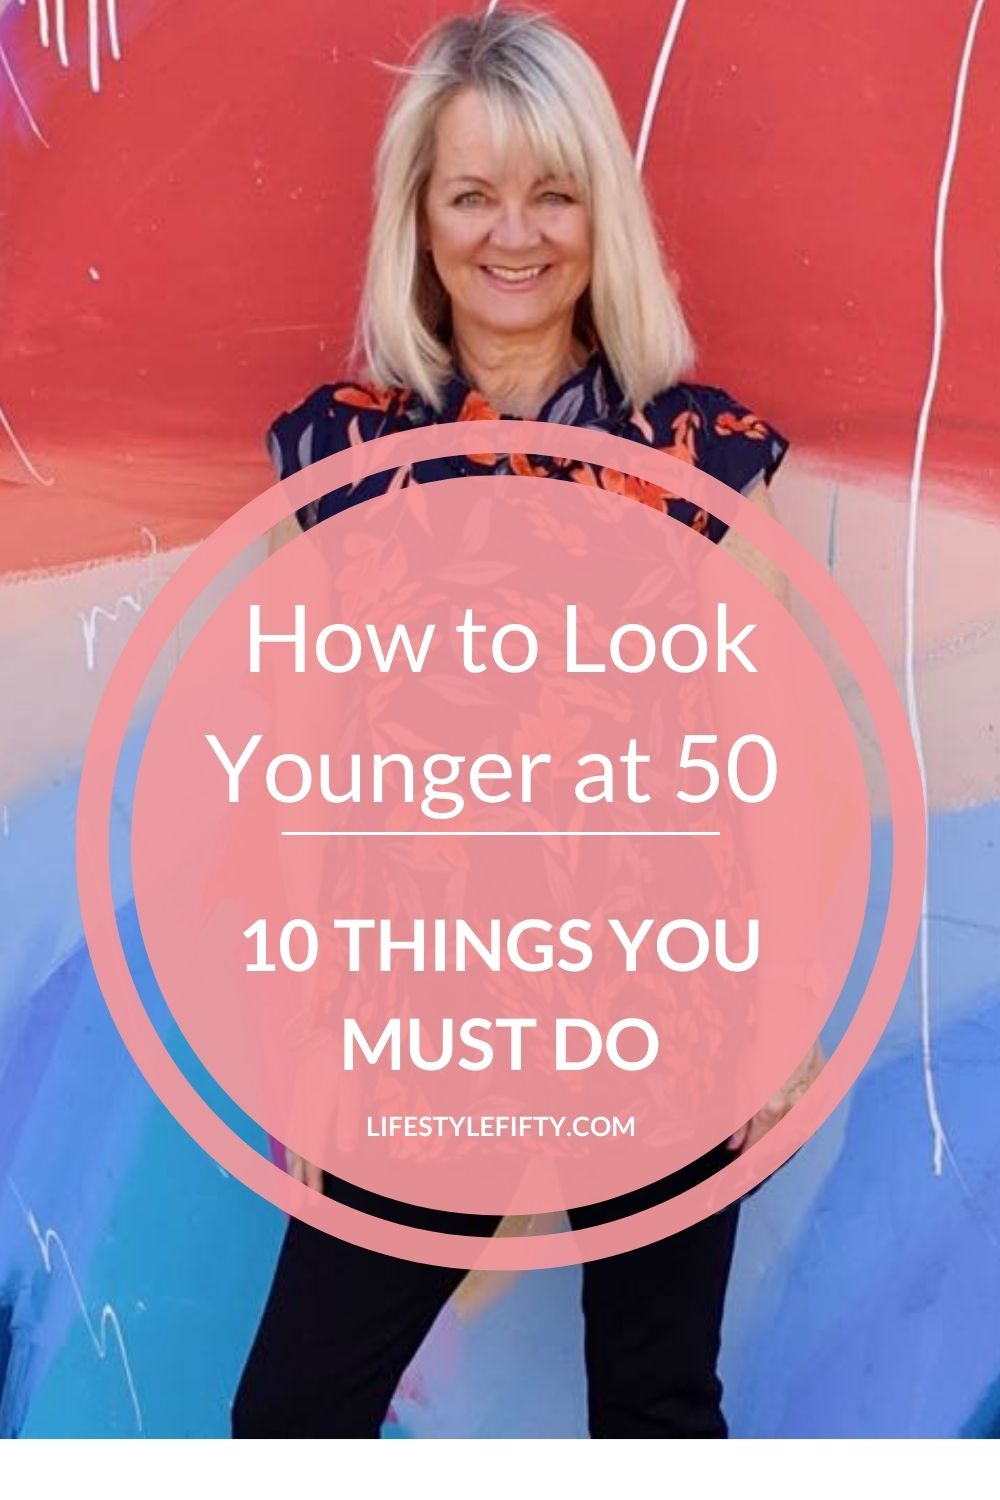 Image of woman with text overlay for the post How to Look Younger at 50